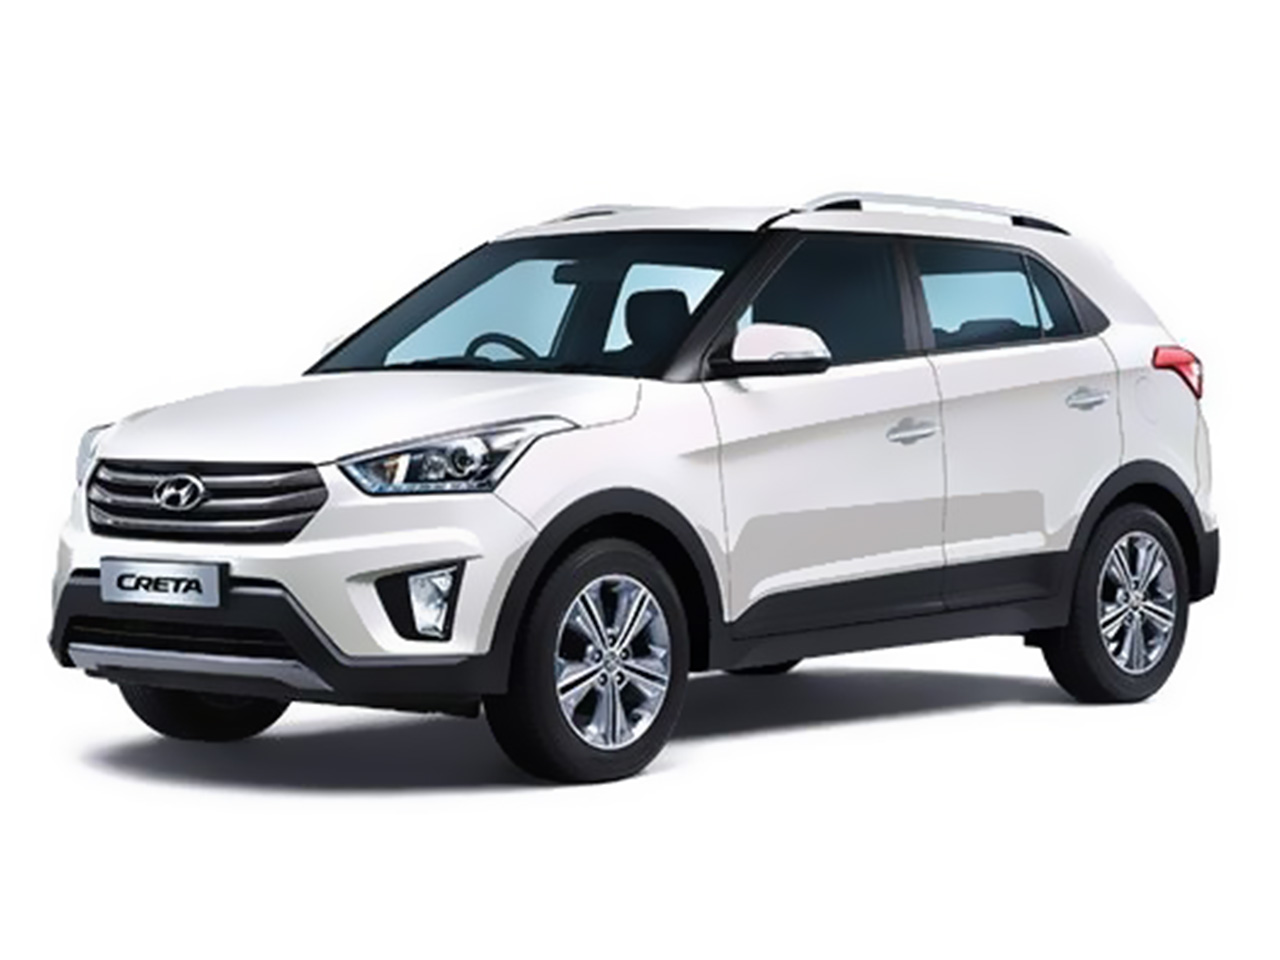 2018 Hyundai Creta Prices In Uae Gulf Specs Amp Reviews For